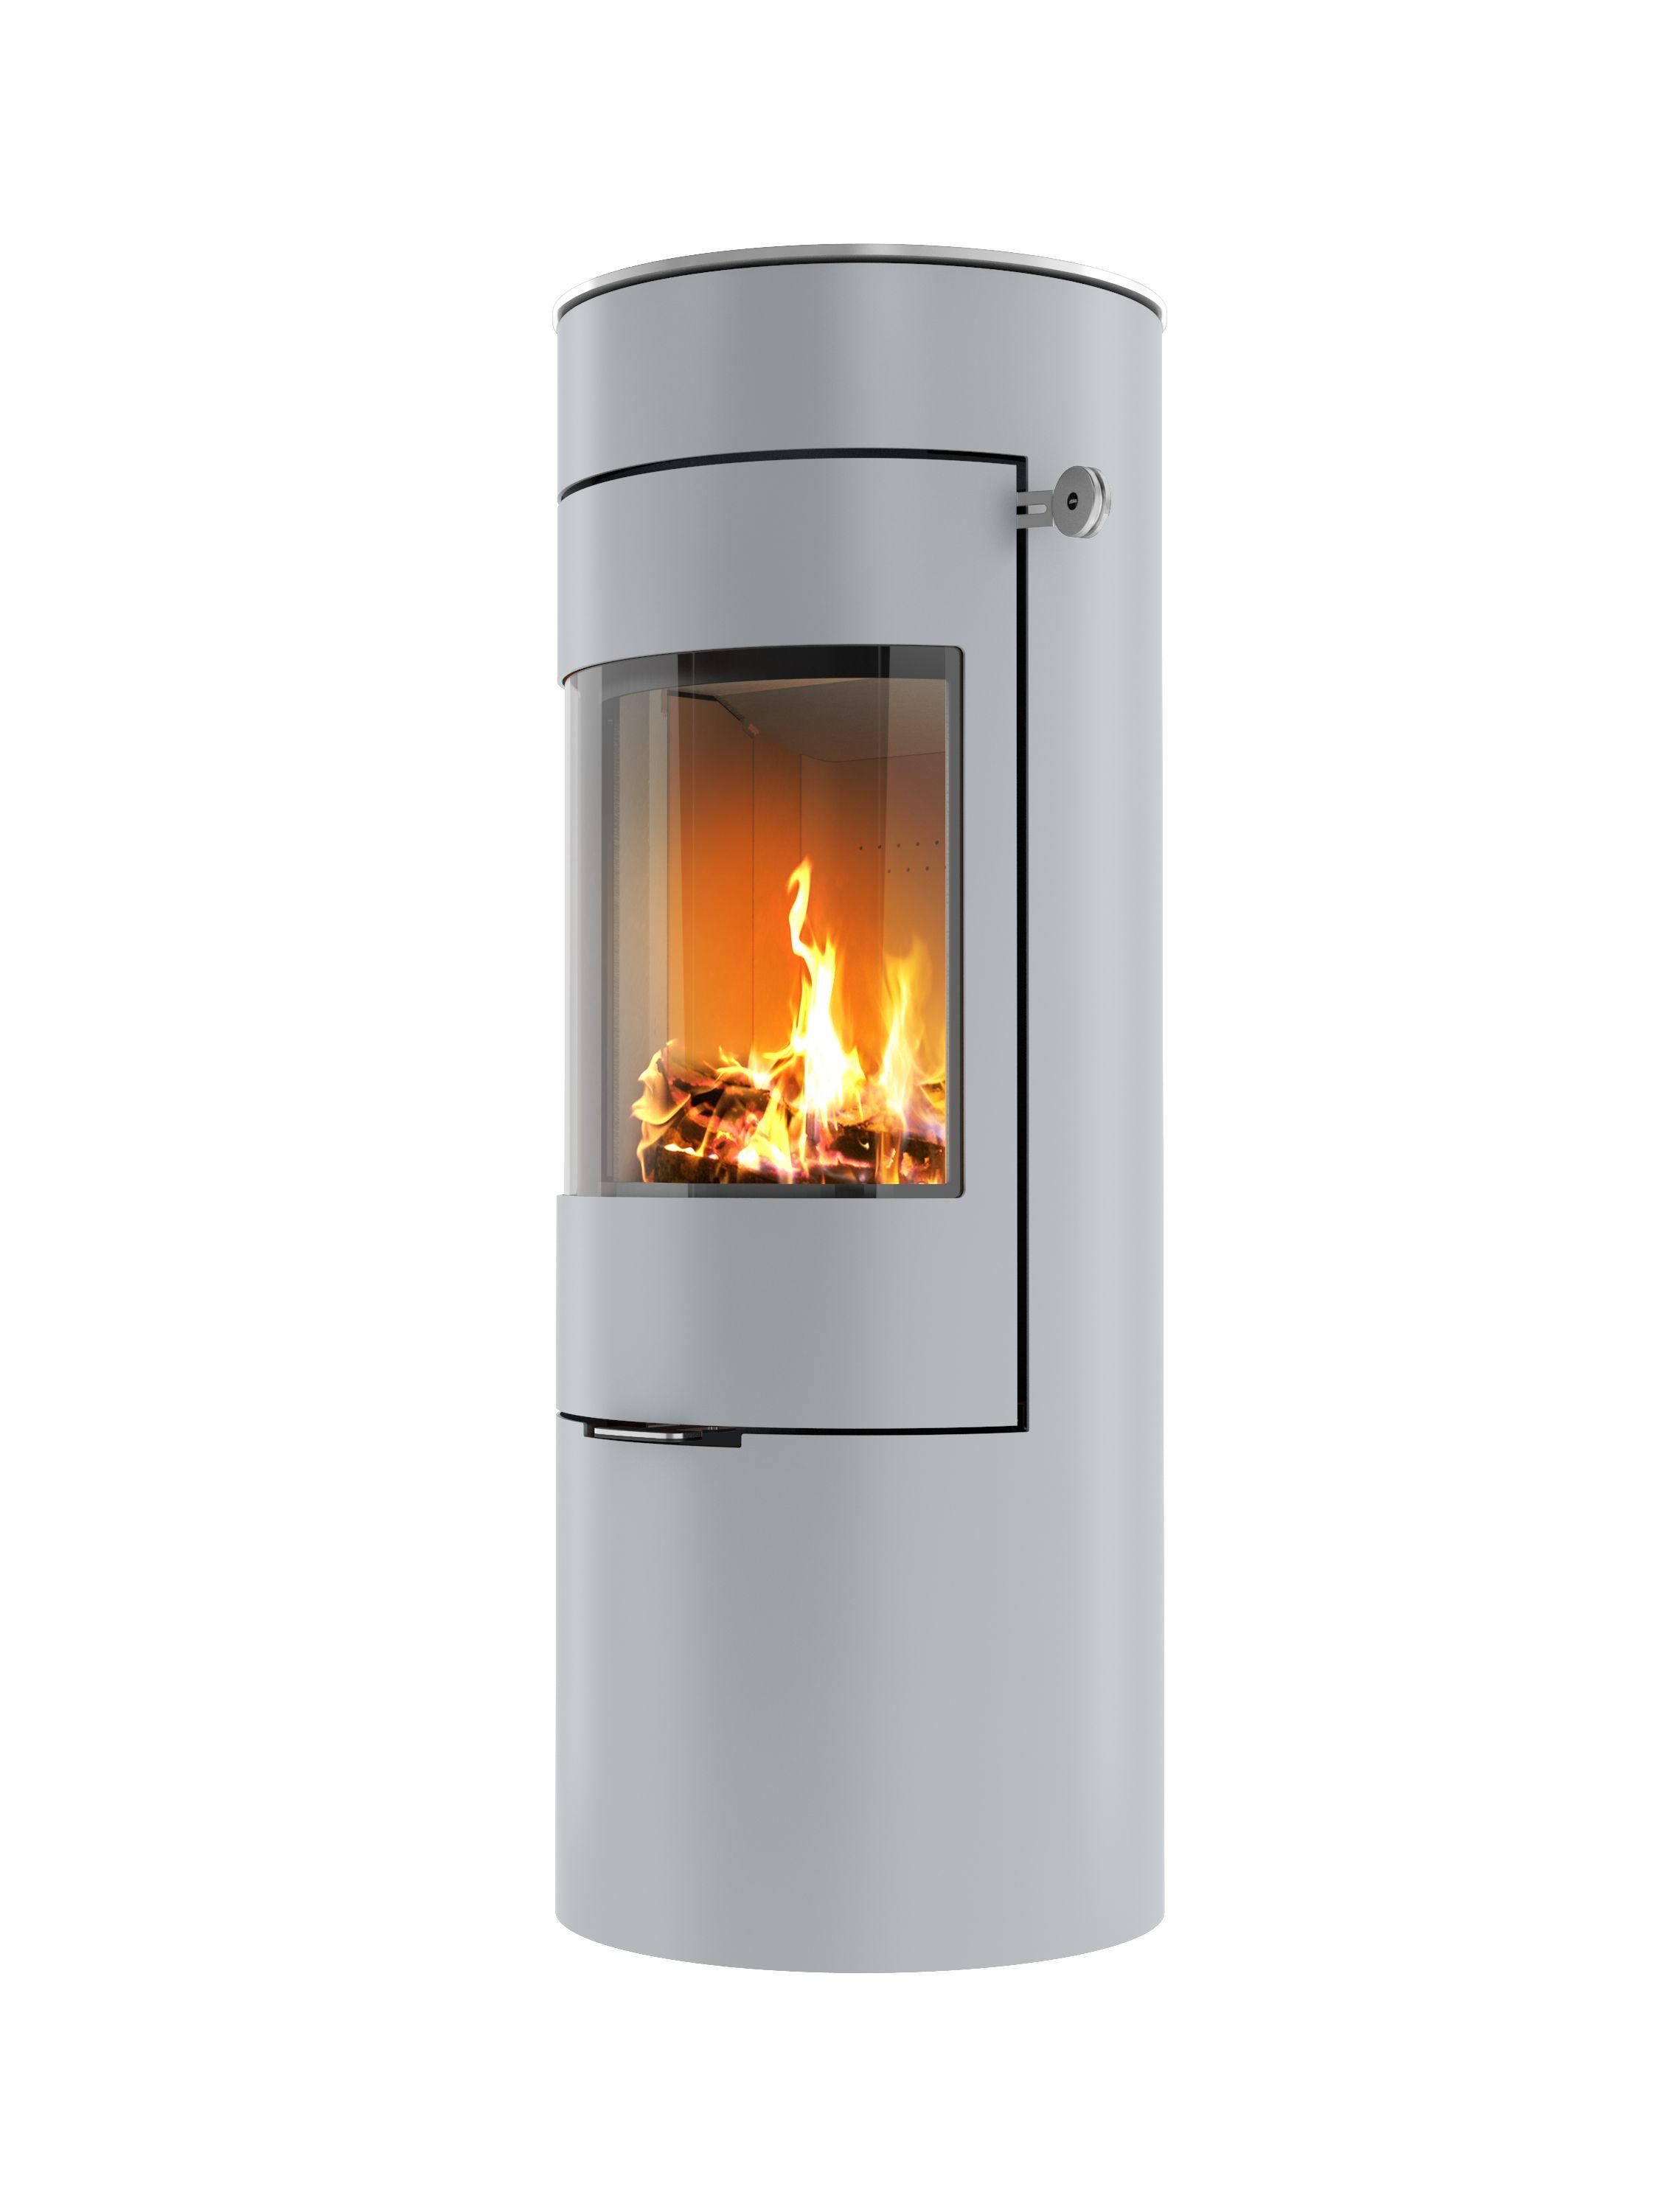 Ignite Stoves Amp Fireplaces Rais Viva L 120 Woodburning Stove